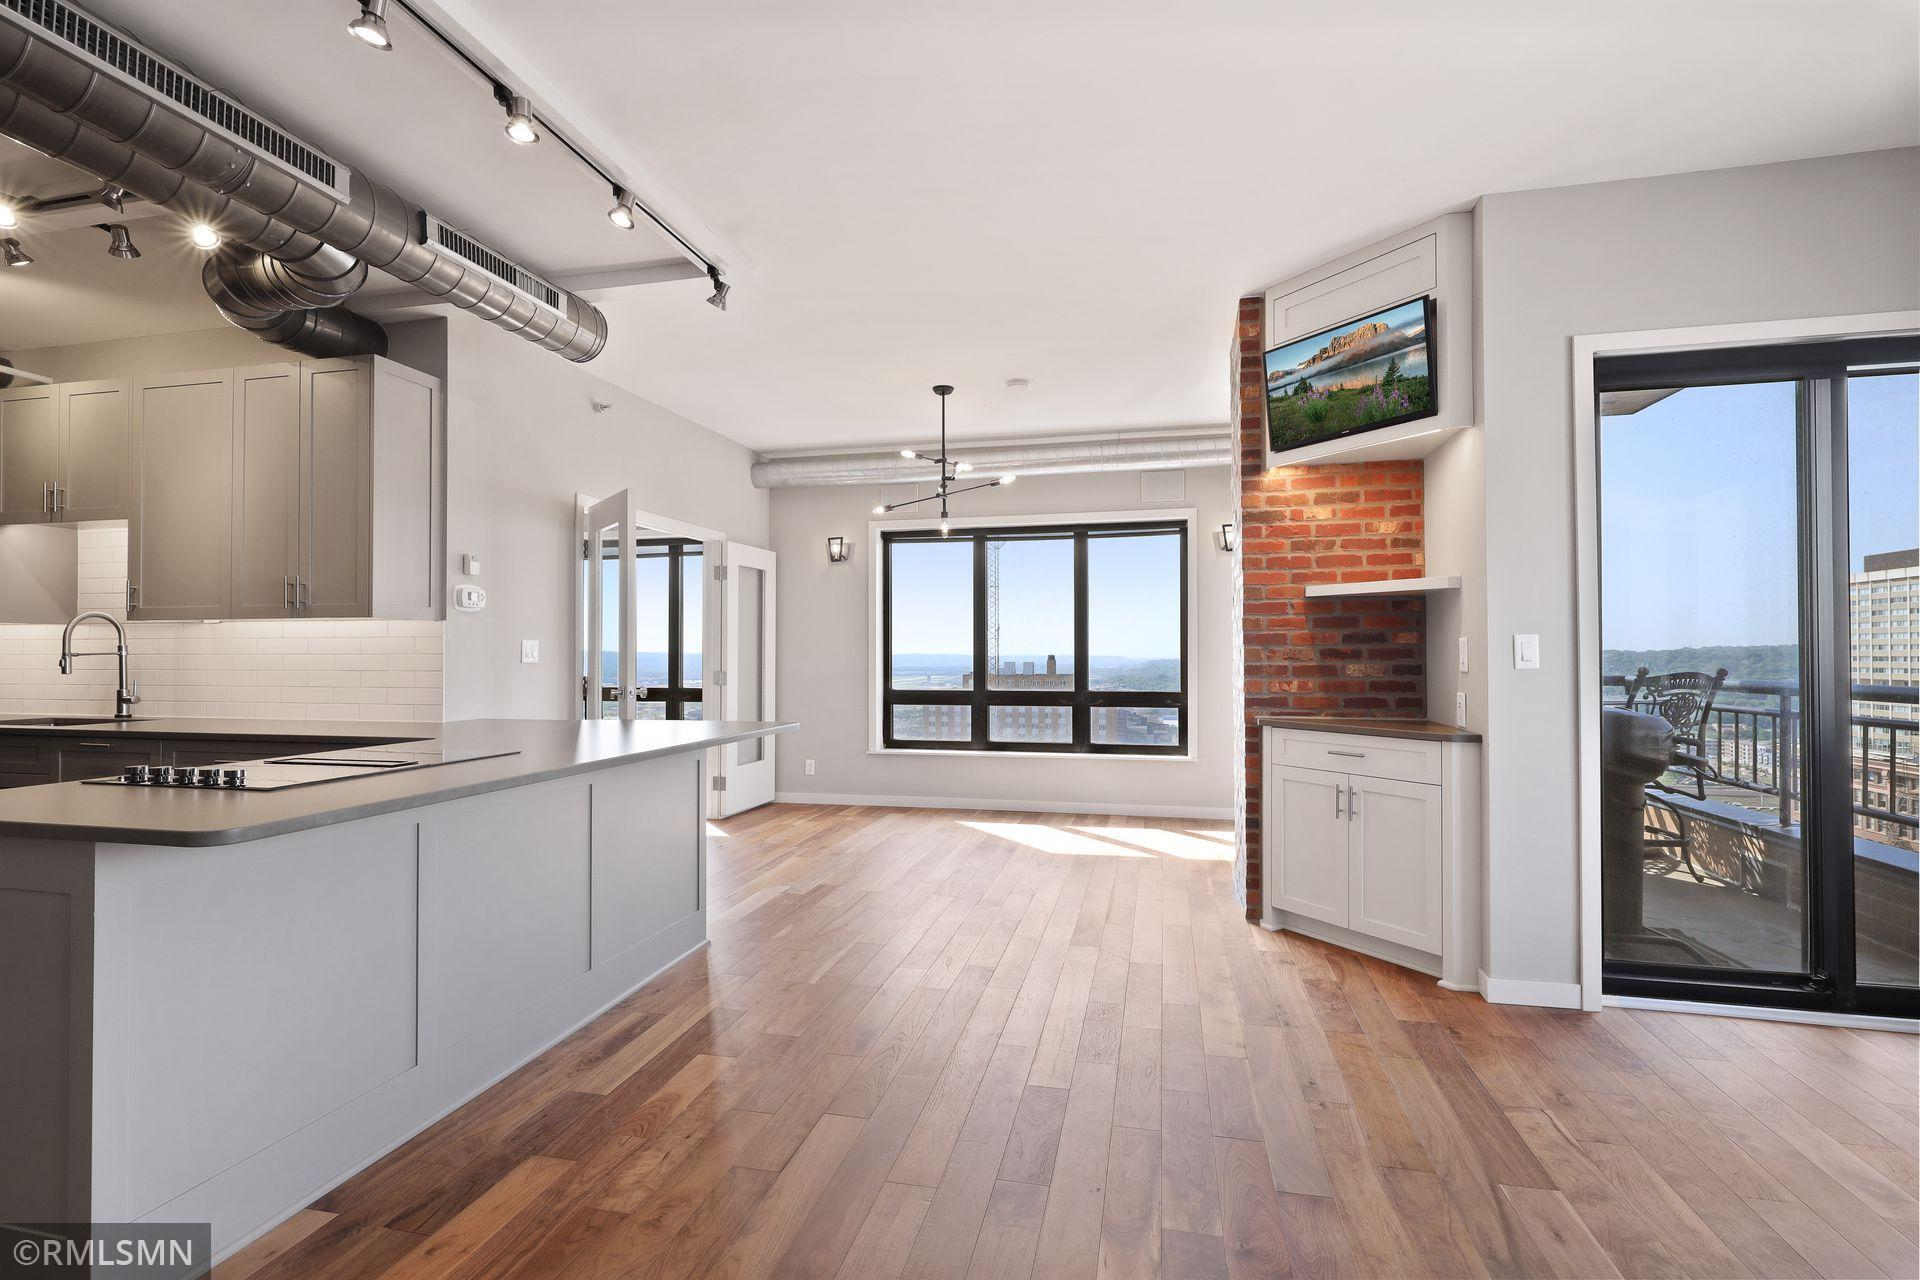 Enjoy panoramic views of the Mississippi River, downtown St. Paul, and the Capital from the luxury of this newly remodeled Lowertown 2 bedroom condo. From this 27th story industrial-themed unit you will be just steps from Mears & Rice Parks, CHS Field, Xcel Energy Center, Union Depot, the Farmers Market, light rail, and numerous bars and restaurants.   No expense was spared in remodeling this home! Custom cabinetry, designer lighting, and engineered hardwoods throughout. The open floor plan is great for entertaining, prepare meals from the kitchens' island cooktop, listen to music through the built-in Bose stereo system, and converse with friends while watching your favorite shows on the rotating TV on the classic brick column.